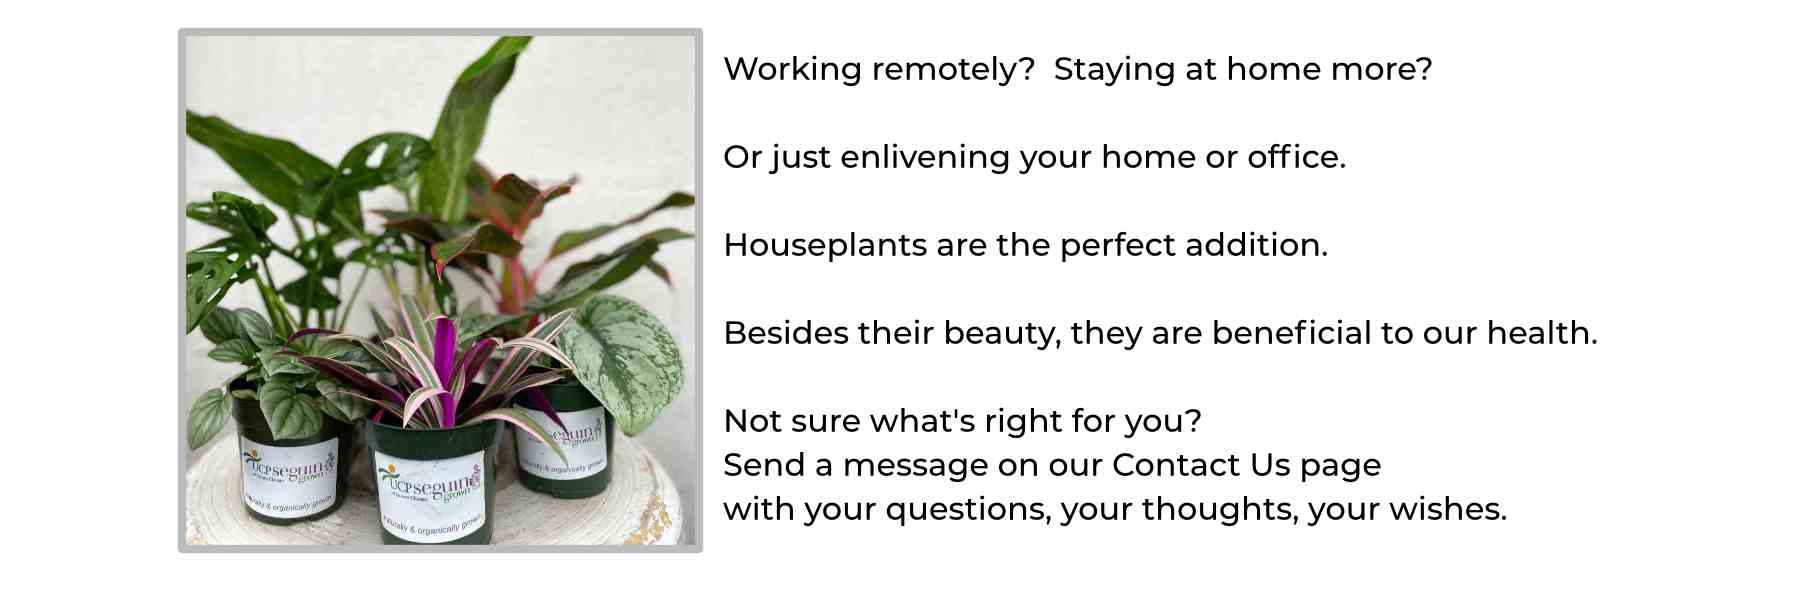 grouping of houseplants with text discussing benefits of plants